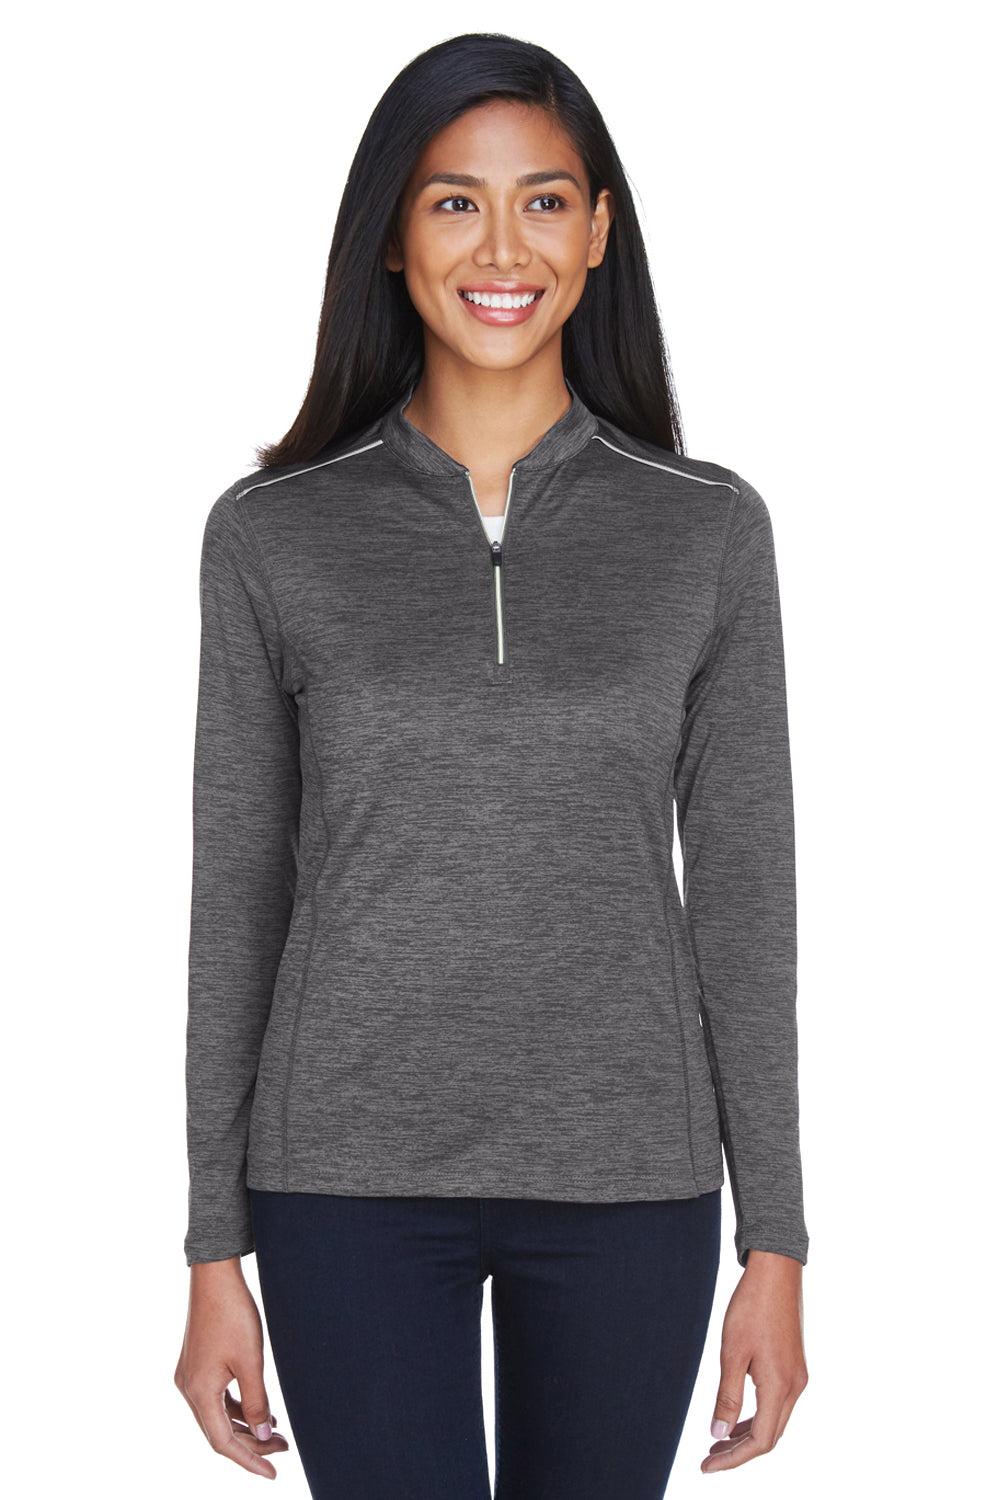 Core 365 CE401W Womens Kinetic Performance Moisture Wicking 1/4 Zip Sweatshirt Carbon Grey/Black Front